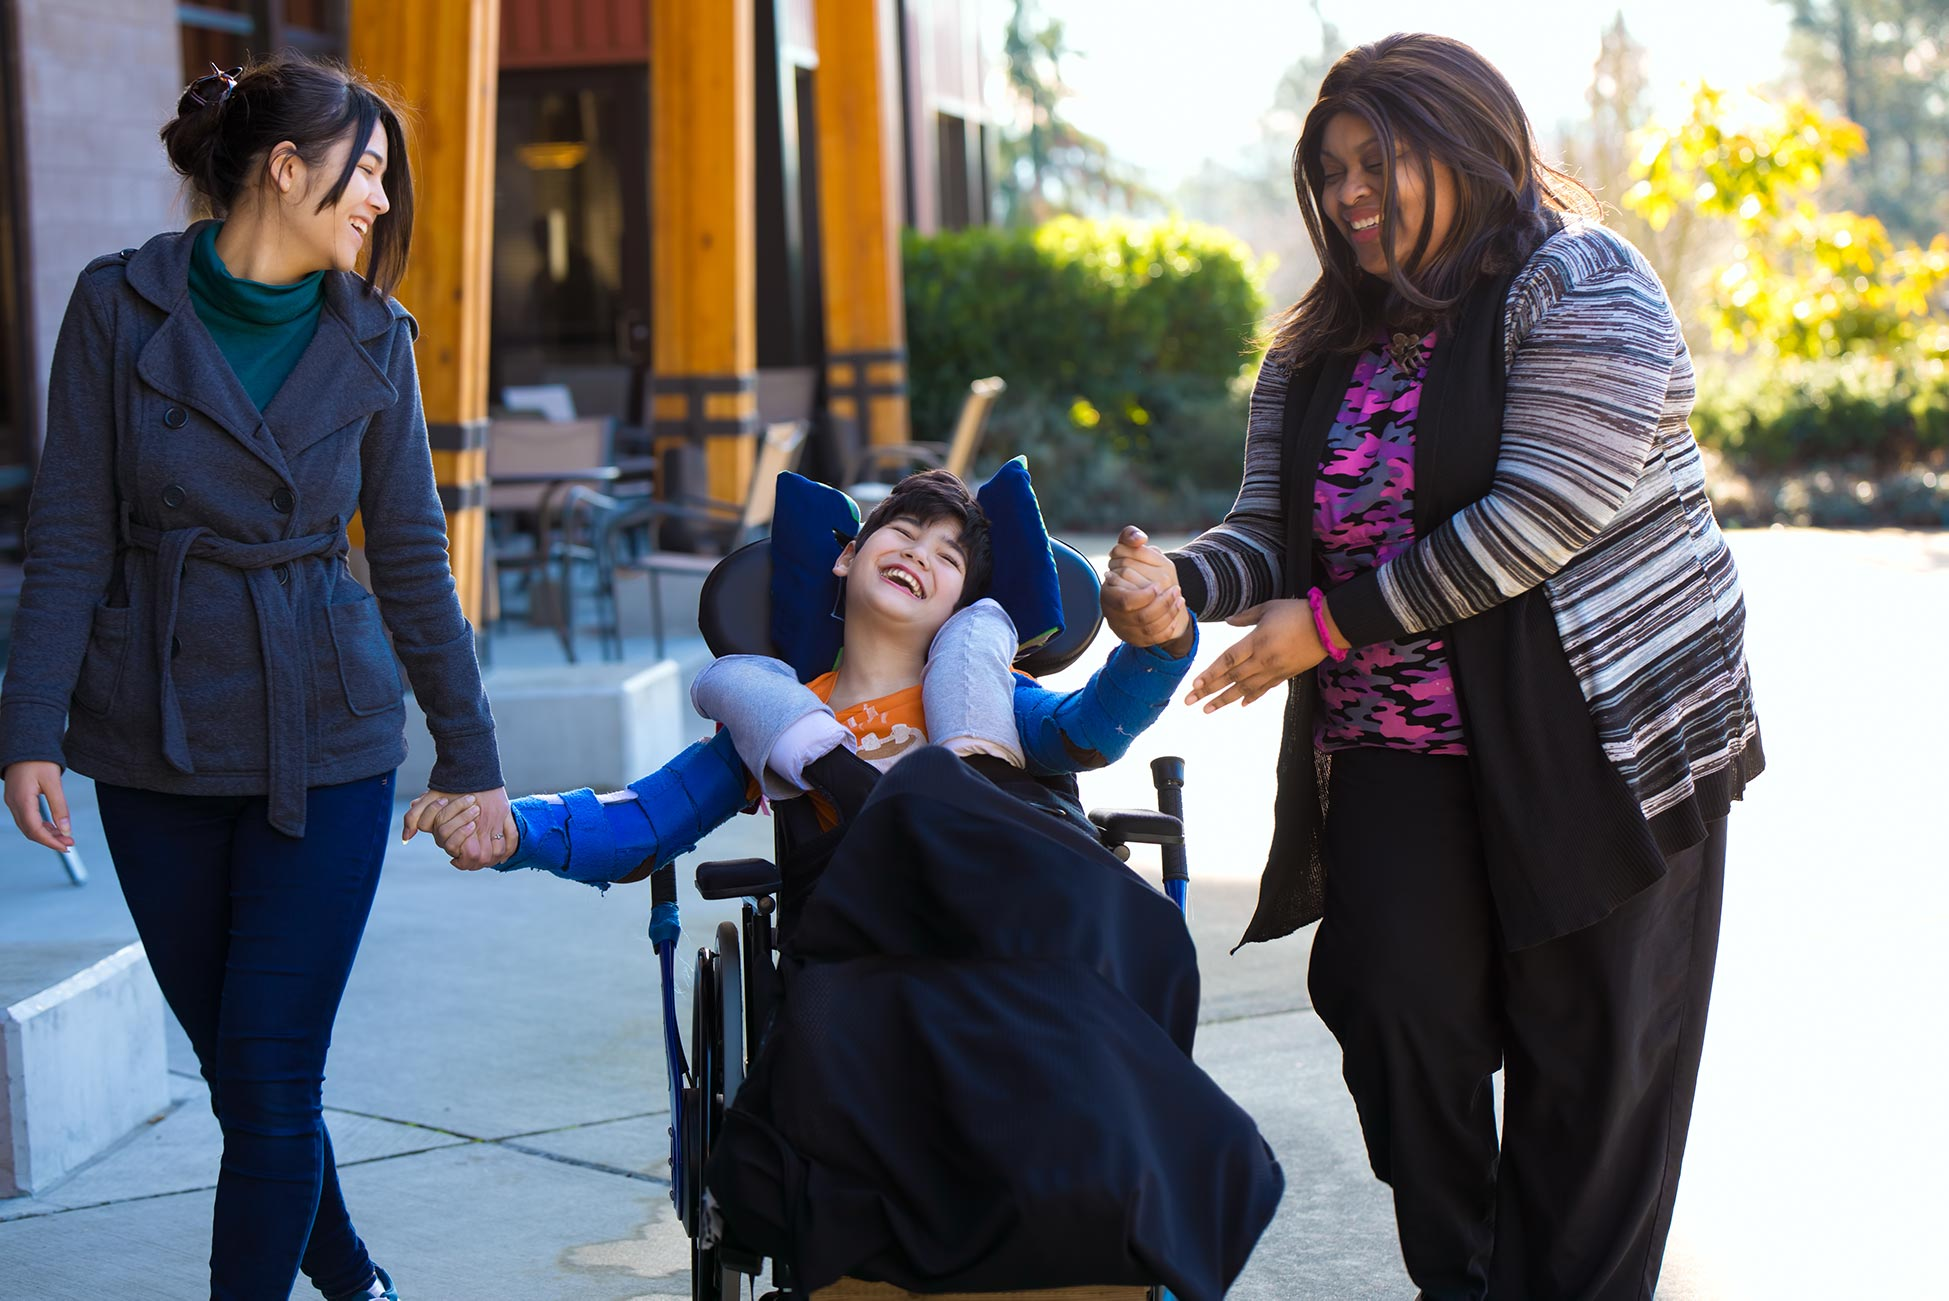 Carers laughing with disabled child